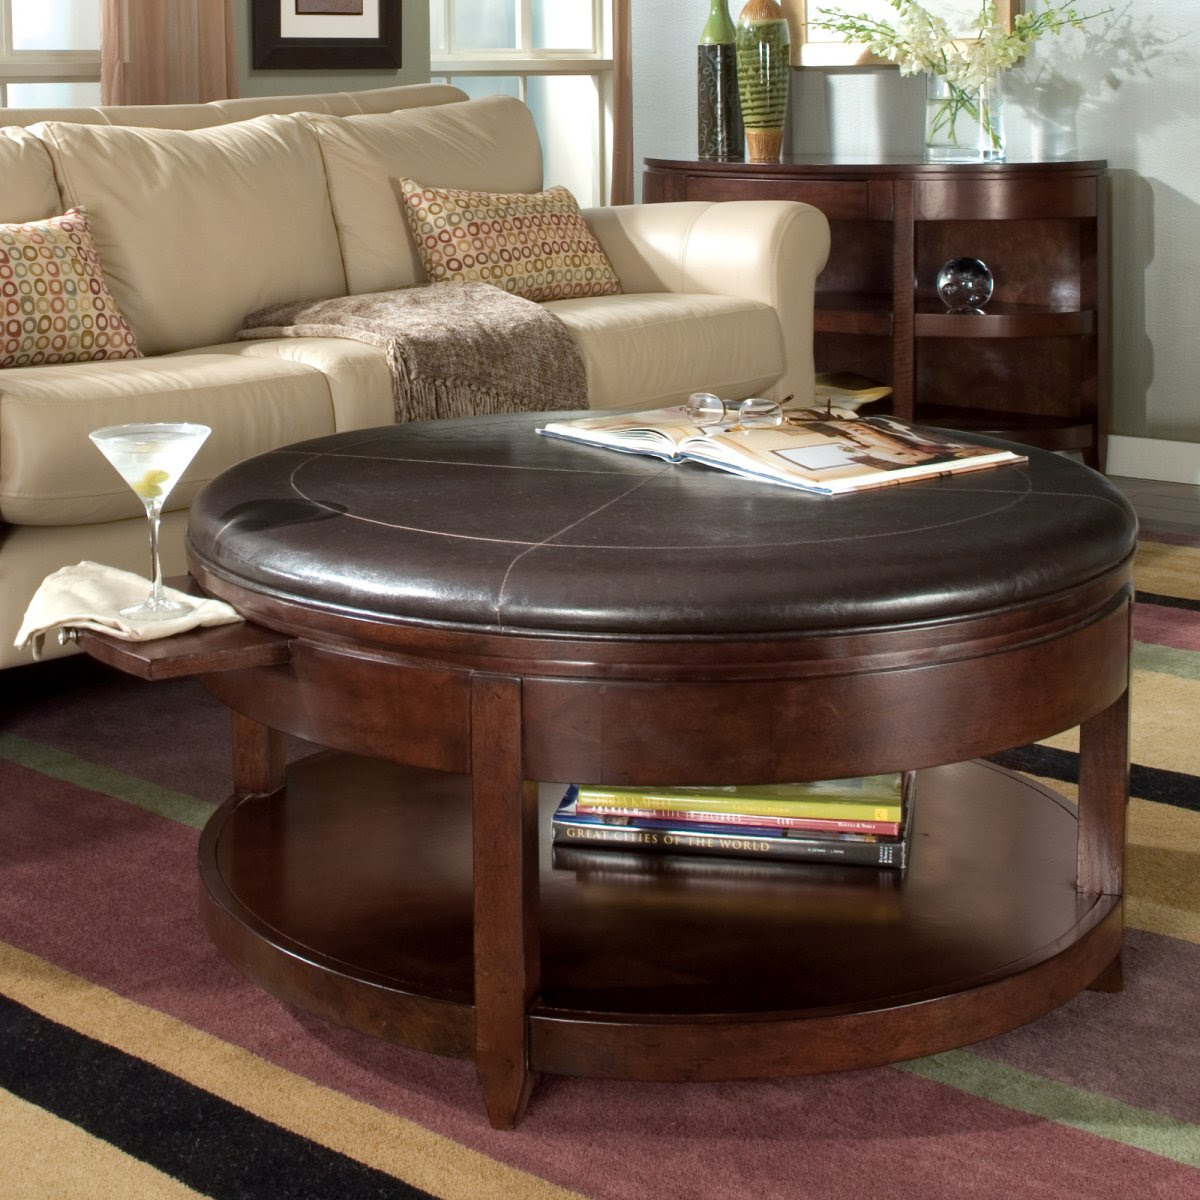 Awesome Round Coffee Tables with Storage - HomesFeed